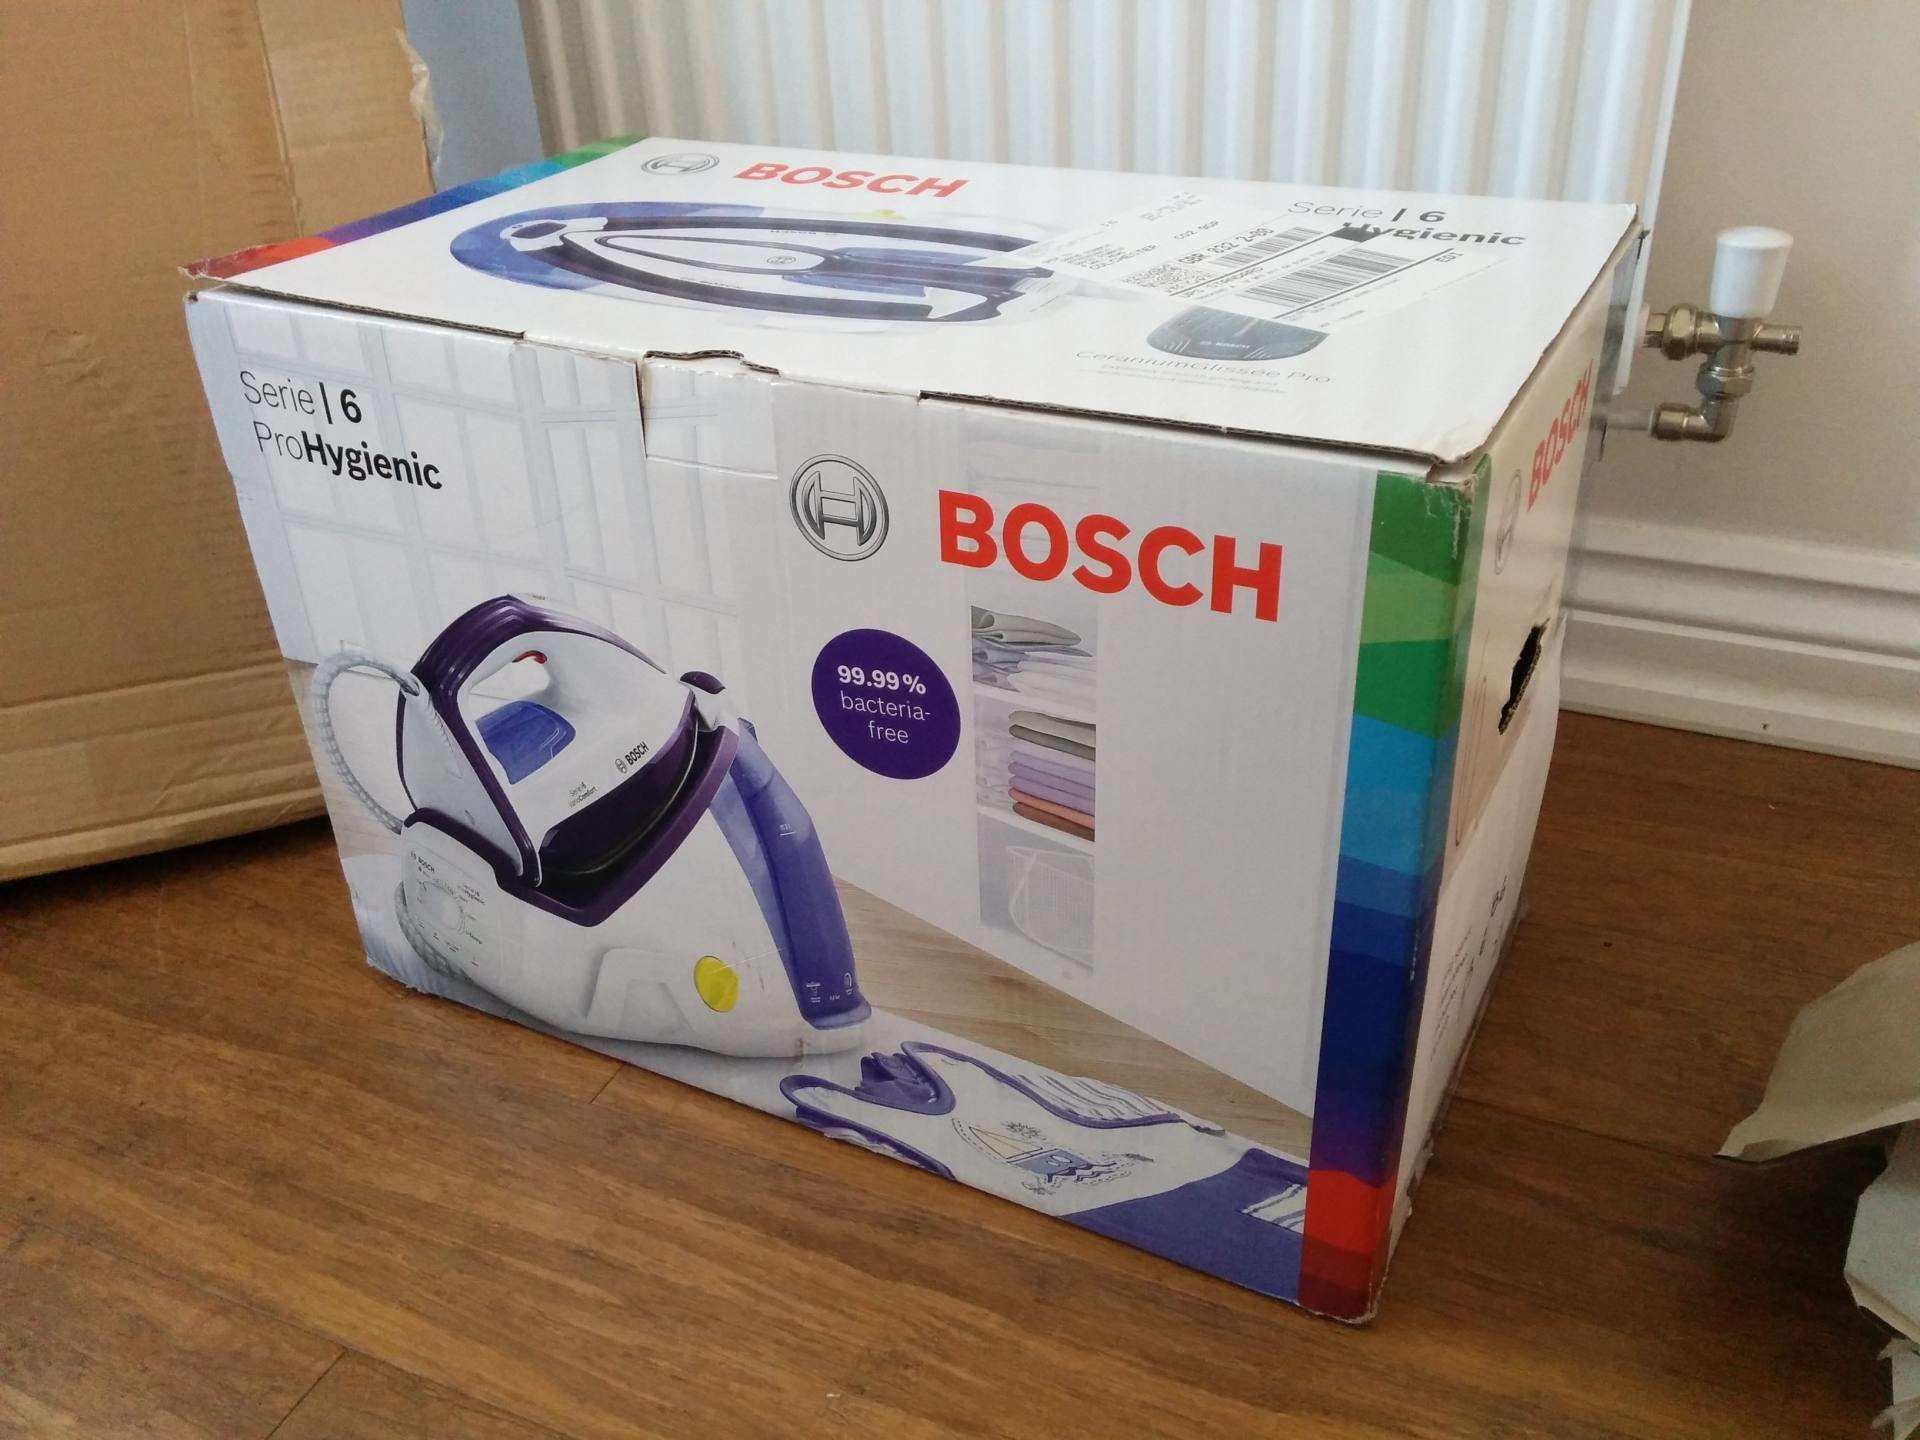 Bosch Serie 6 VarioComfort Iron Competition & Review, img 20161017 102945%, product-review%